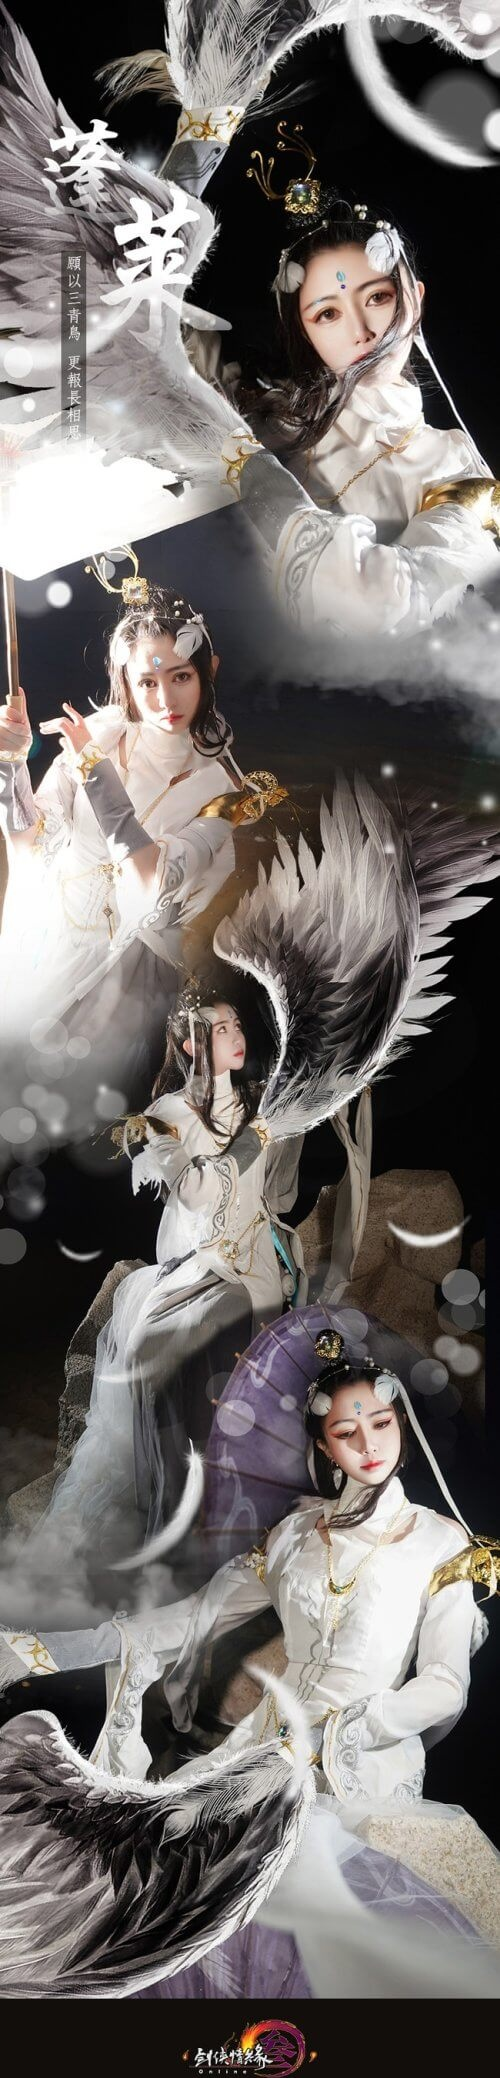 Beautiful cosplay from China